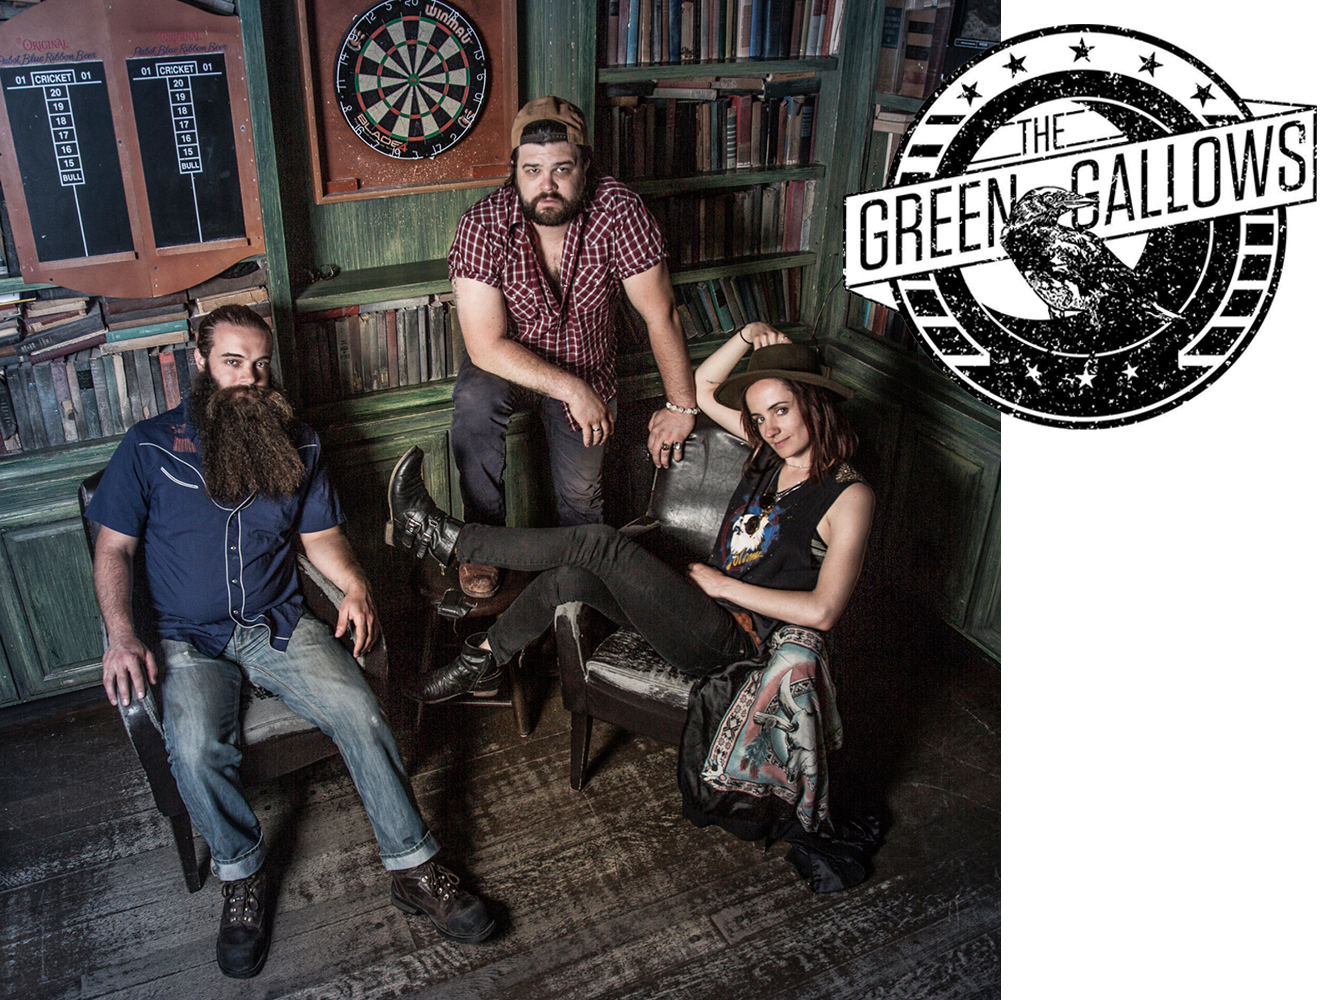 The Green Gallows  -  The Quays  - Astoria, New York - 2015